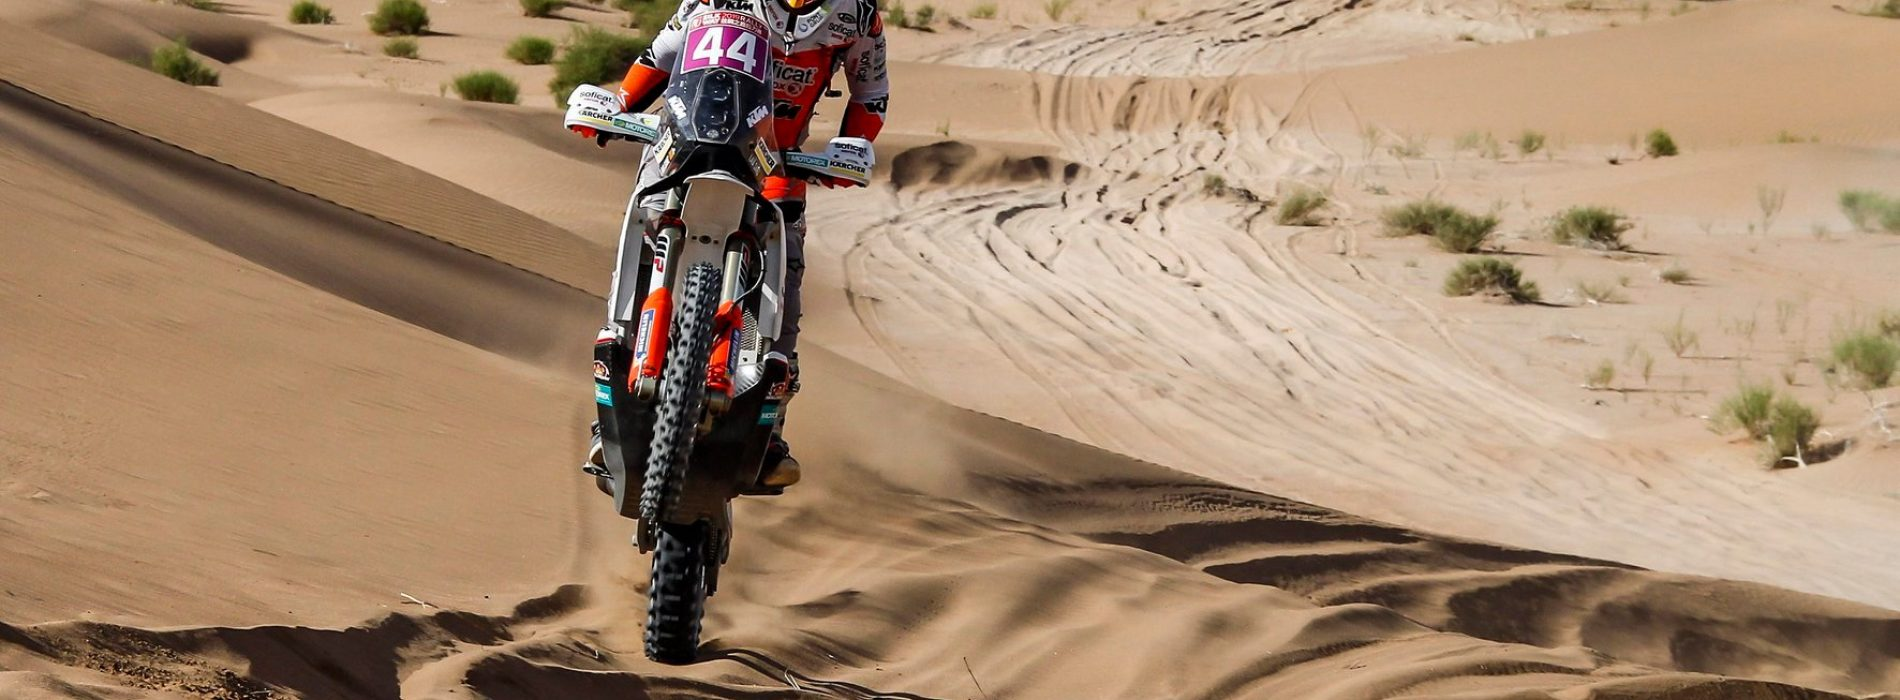 Laia Sanz finishes 7th Overall Stage 9 Silk Way Rally 2019